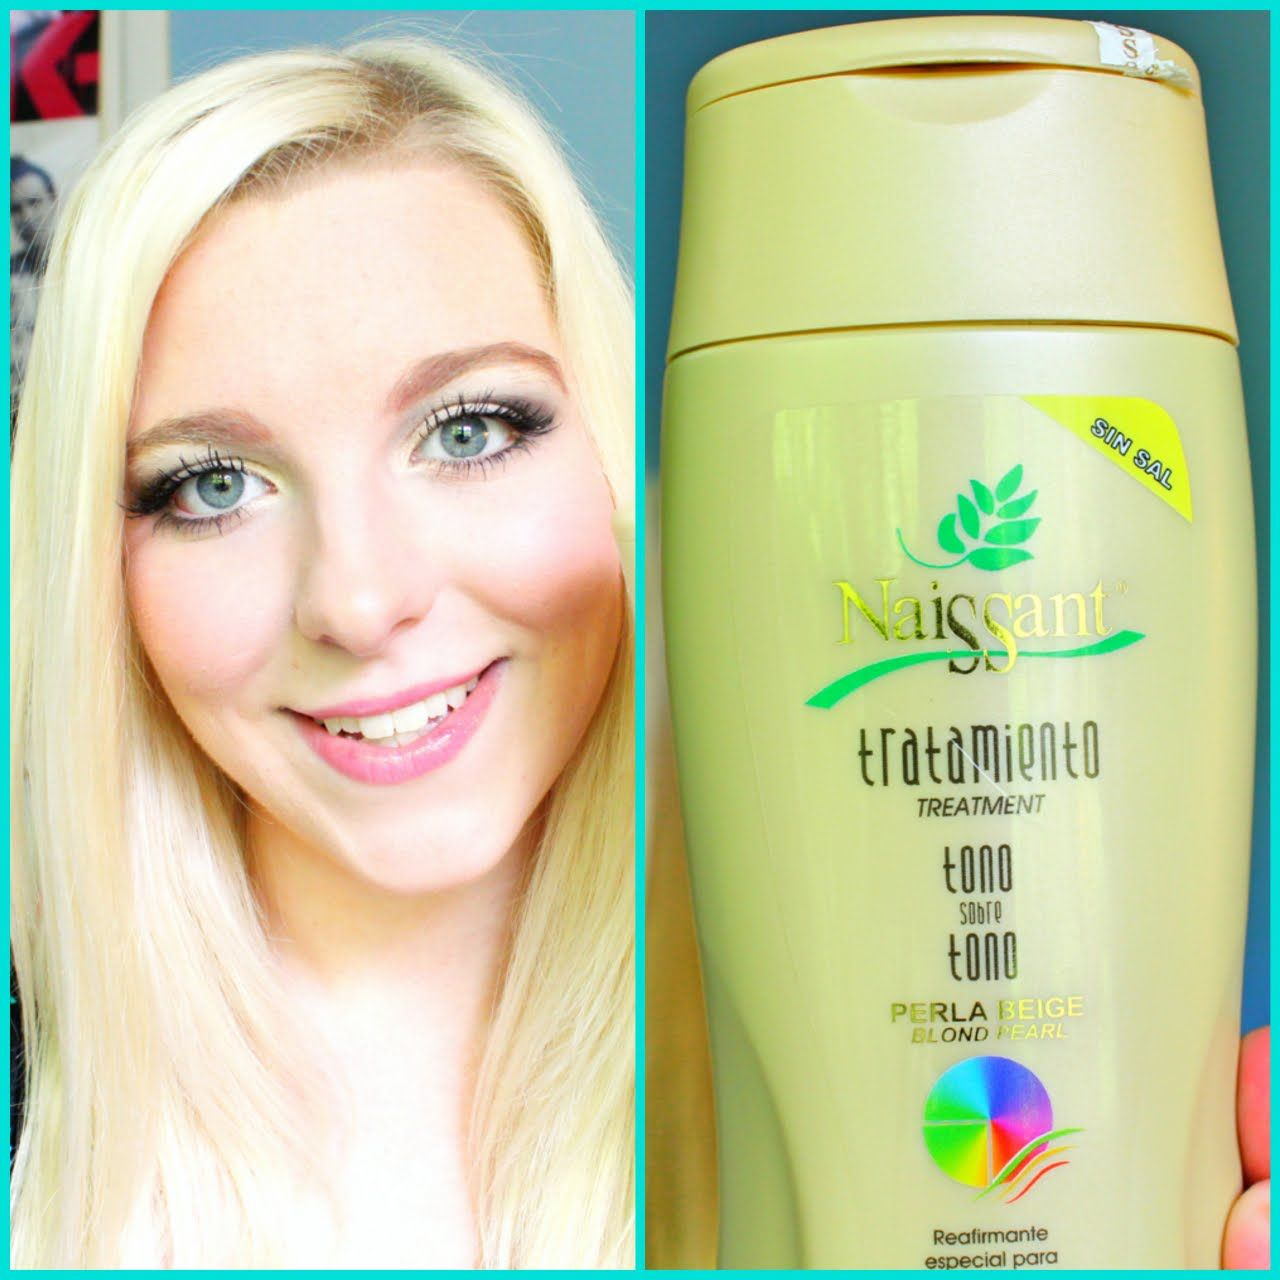 Naissant Icy Blonde Toner Review! (Affordable) Platinum